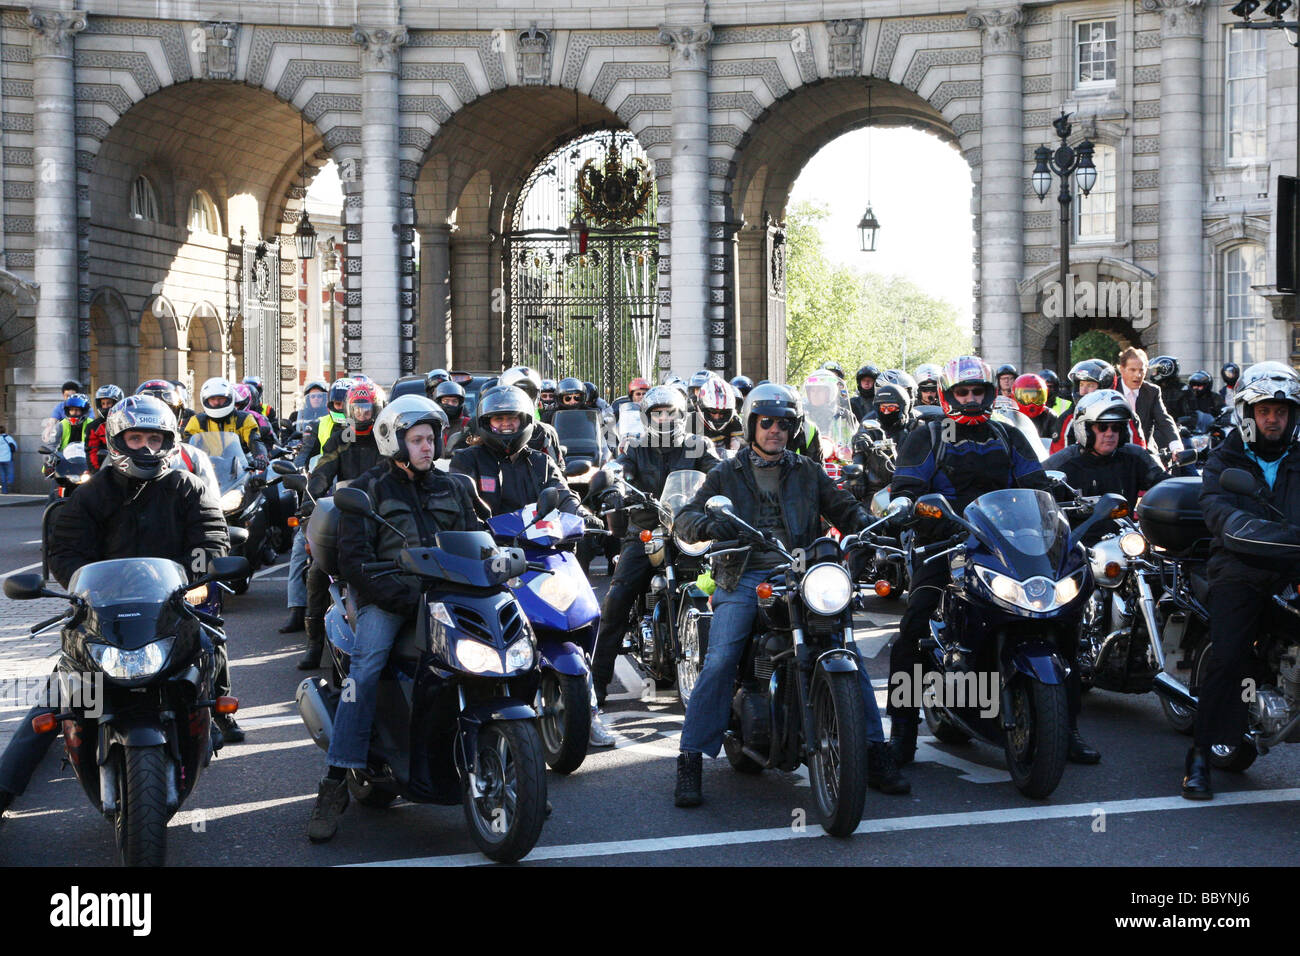 Motorcyclists in front of The Mall, London. They were protesting about parking issues in London. - Stock Image